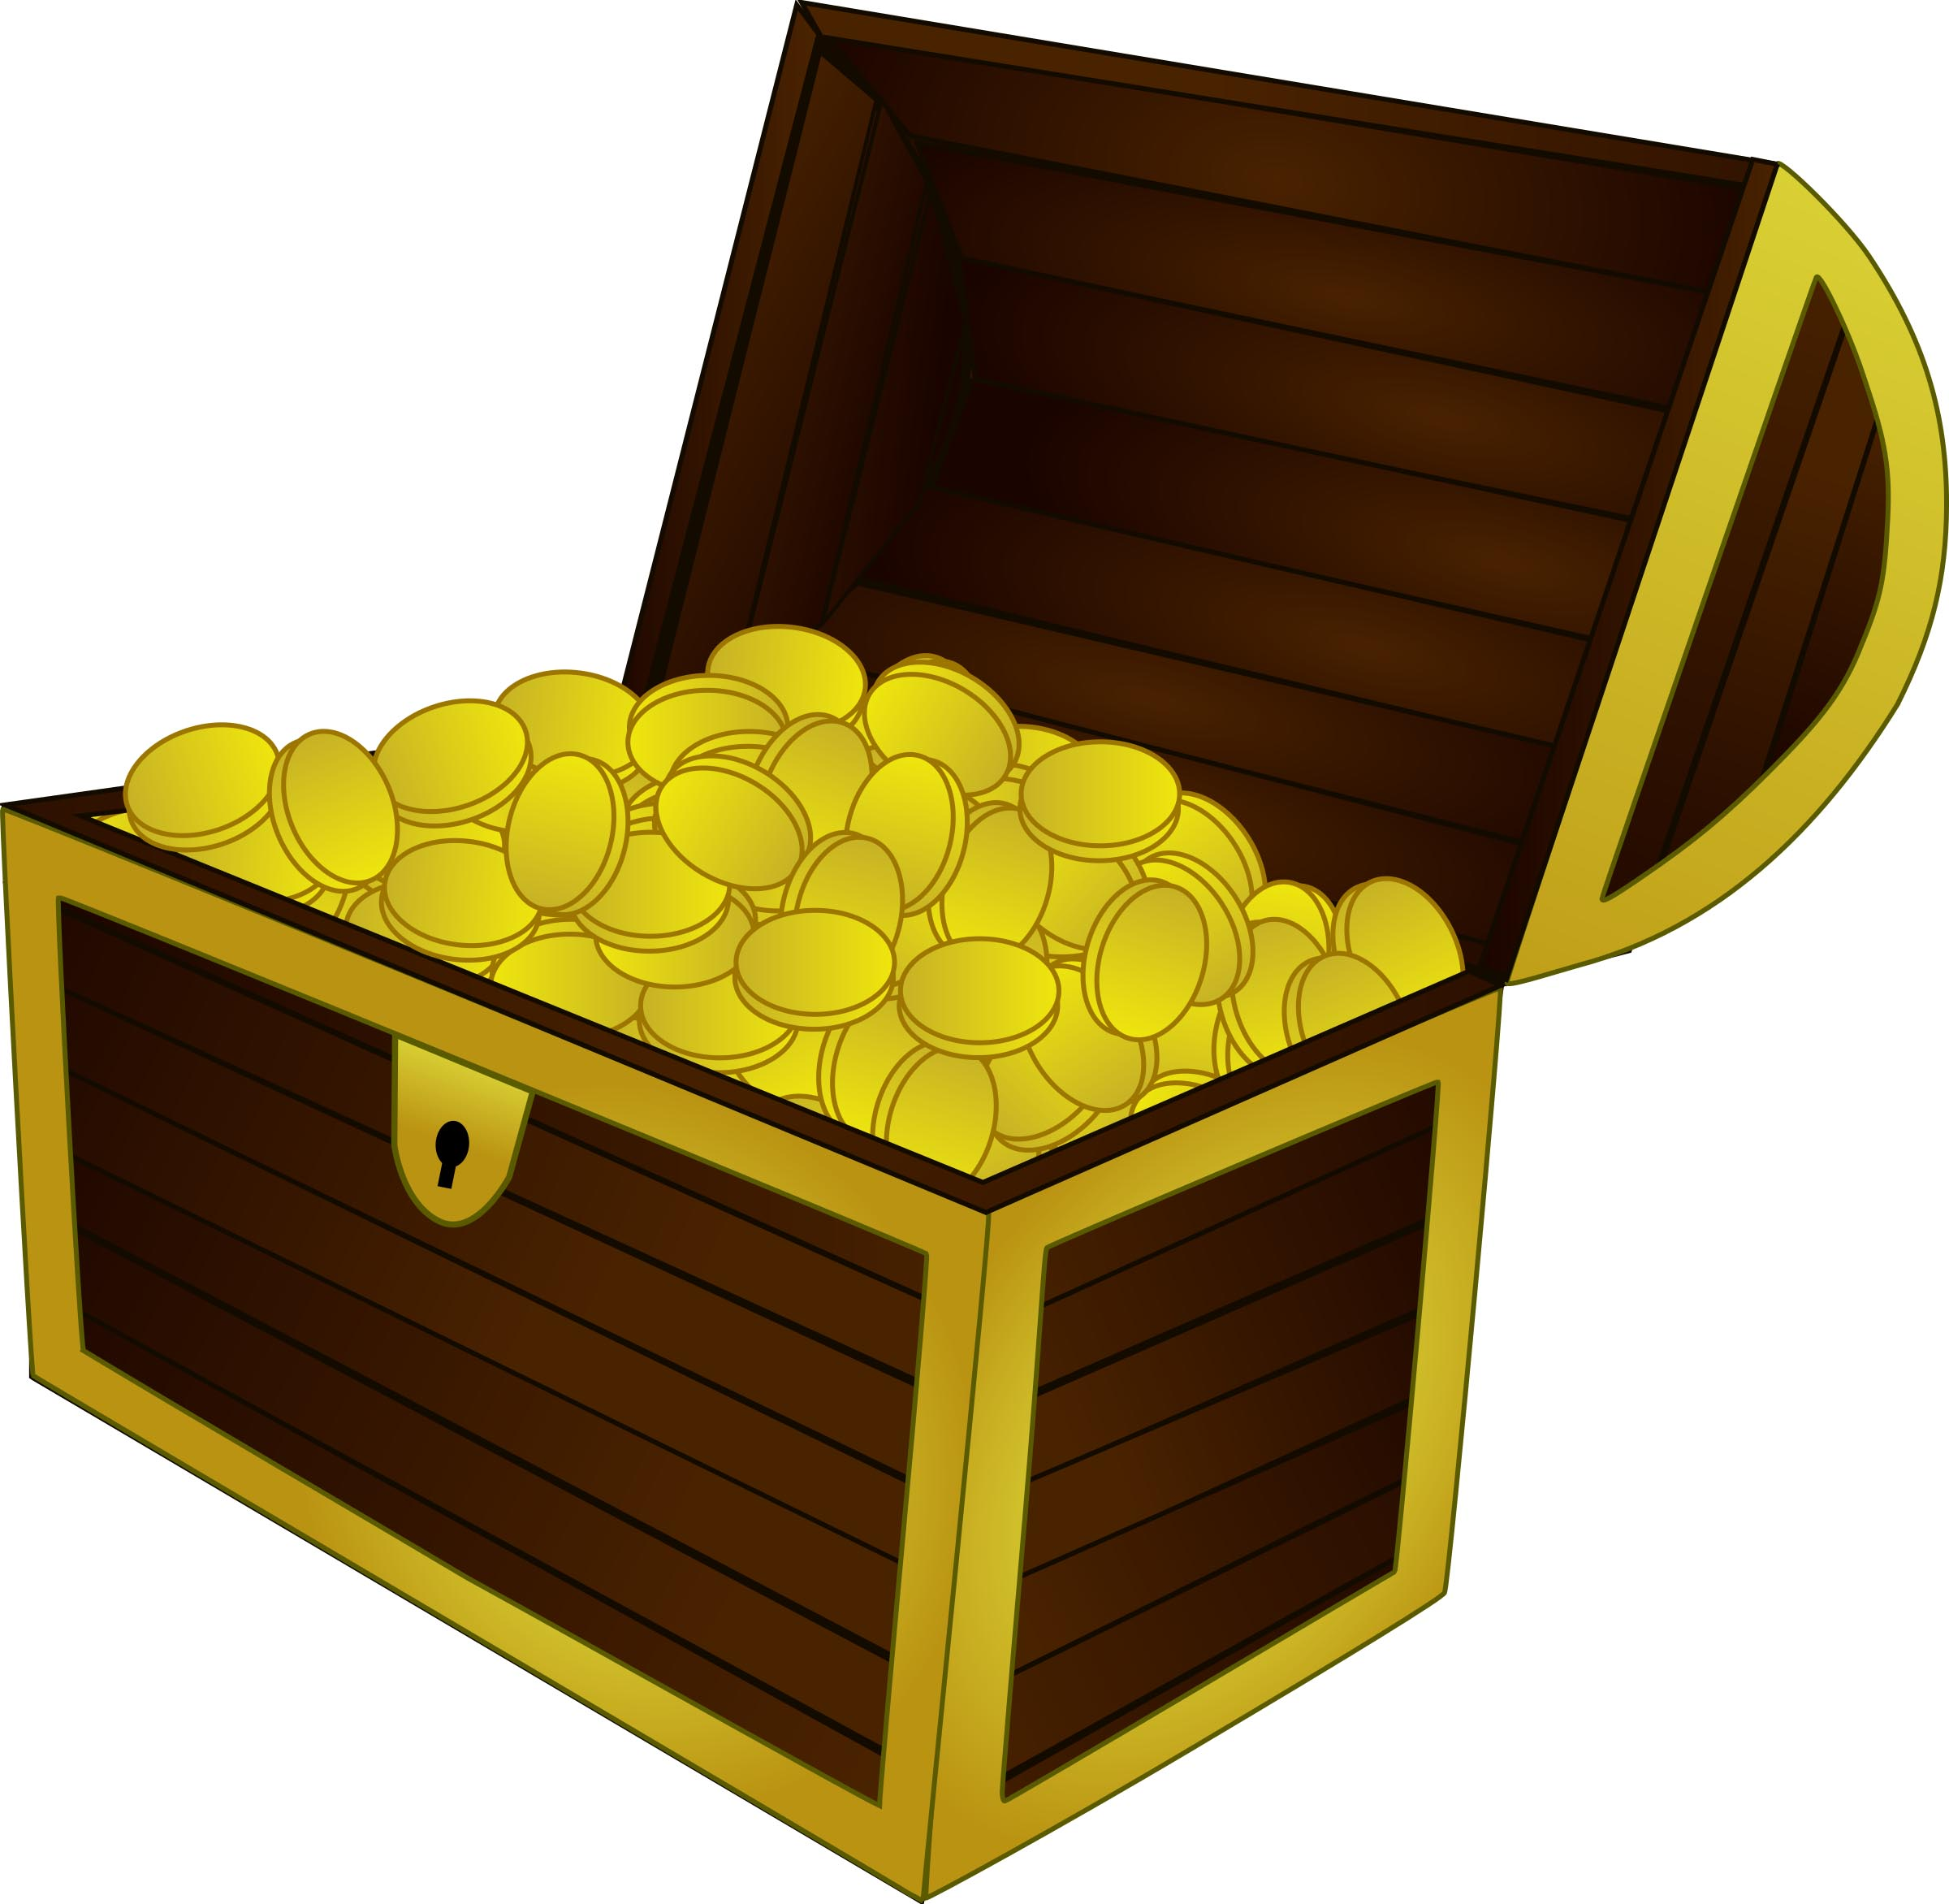 Treasure clipart treasure coin. Chest coins fulfilled free